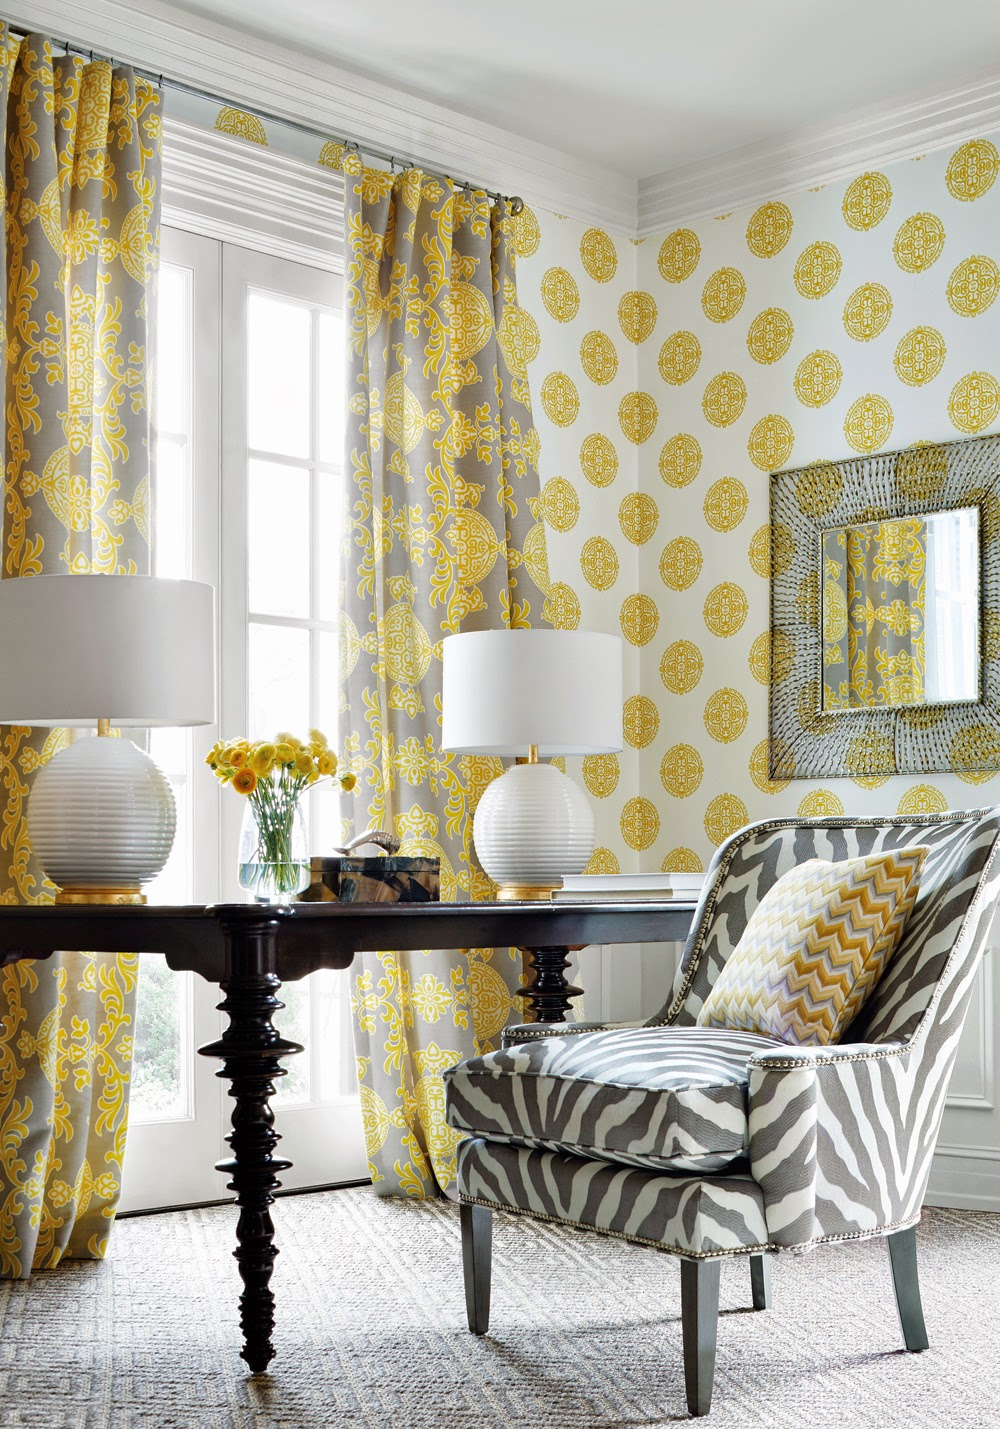 http://www.thibautdesign.com/collection/high_res.php?patternID=1523&productID=10699